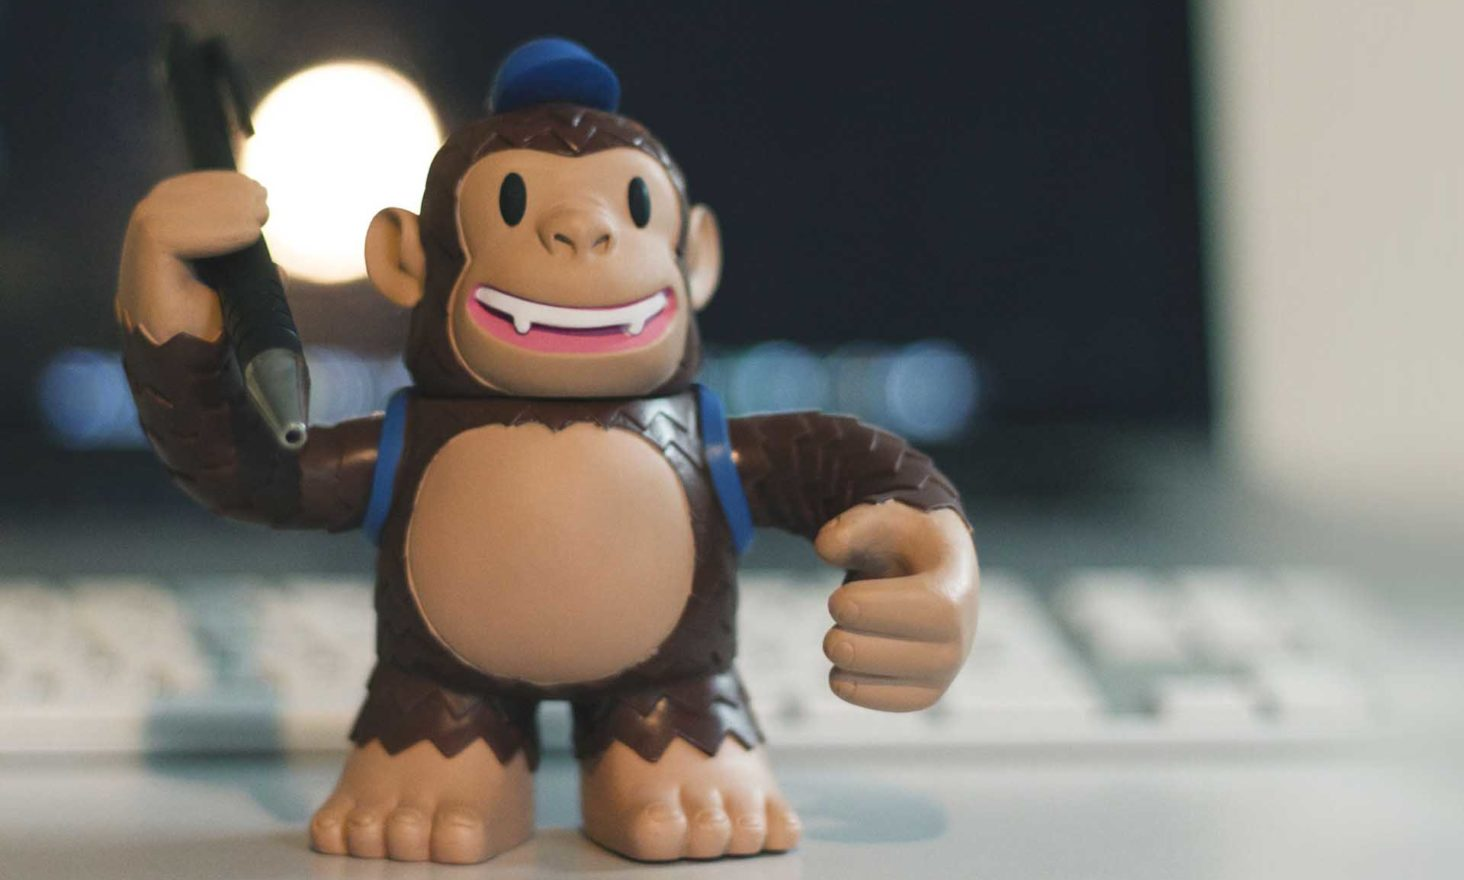 MailChimp Begins Shutting Down Cryptocurrency and ICO-related Accounts